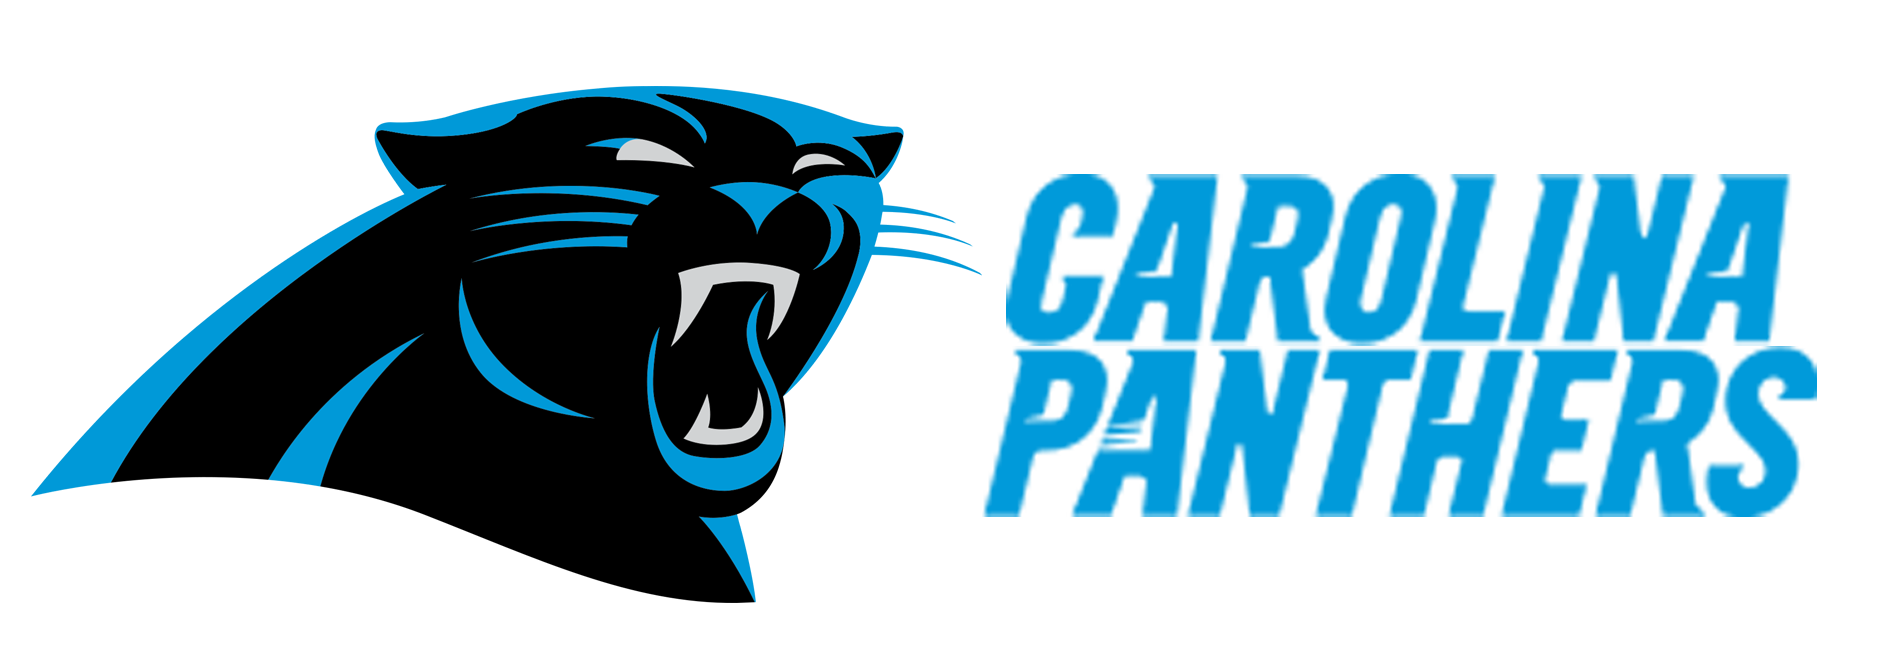 Carolina panthers logo png. Home page httpthegamehauscomwpcontentuploads